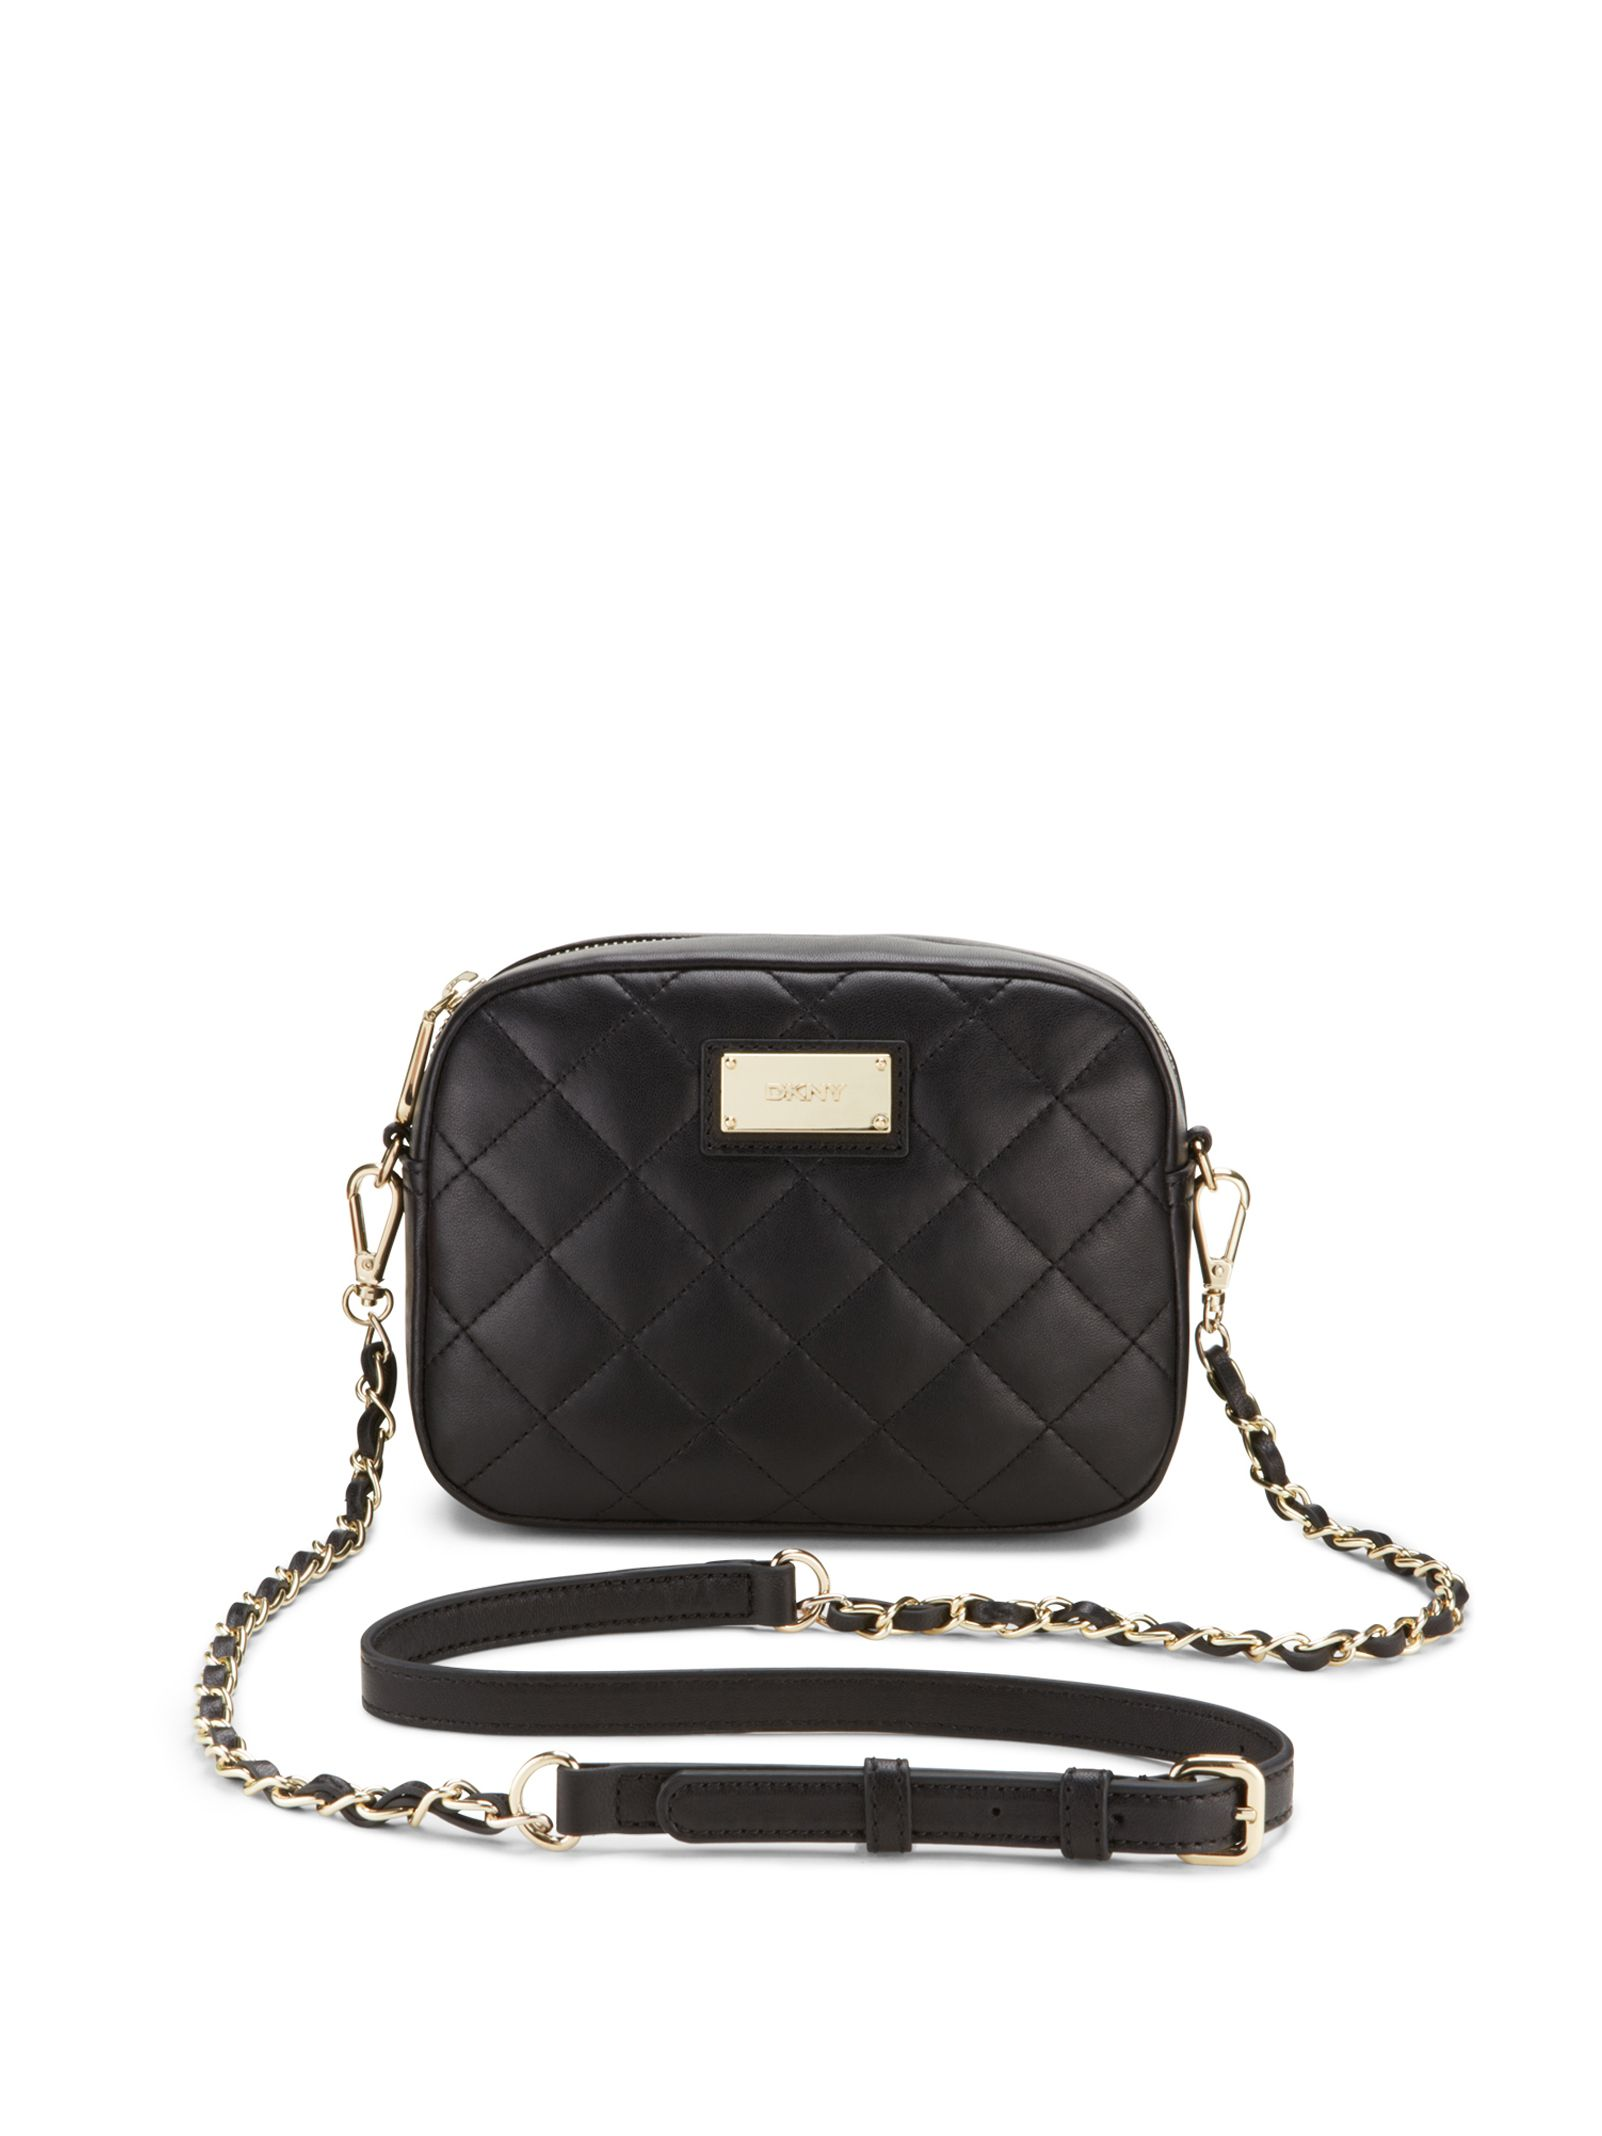 Leather quilted handbags and purses - Quilted Leather Chain Camera Bag Black